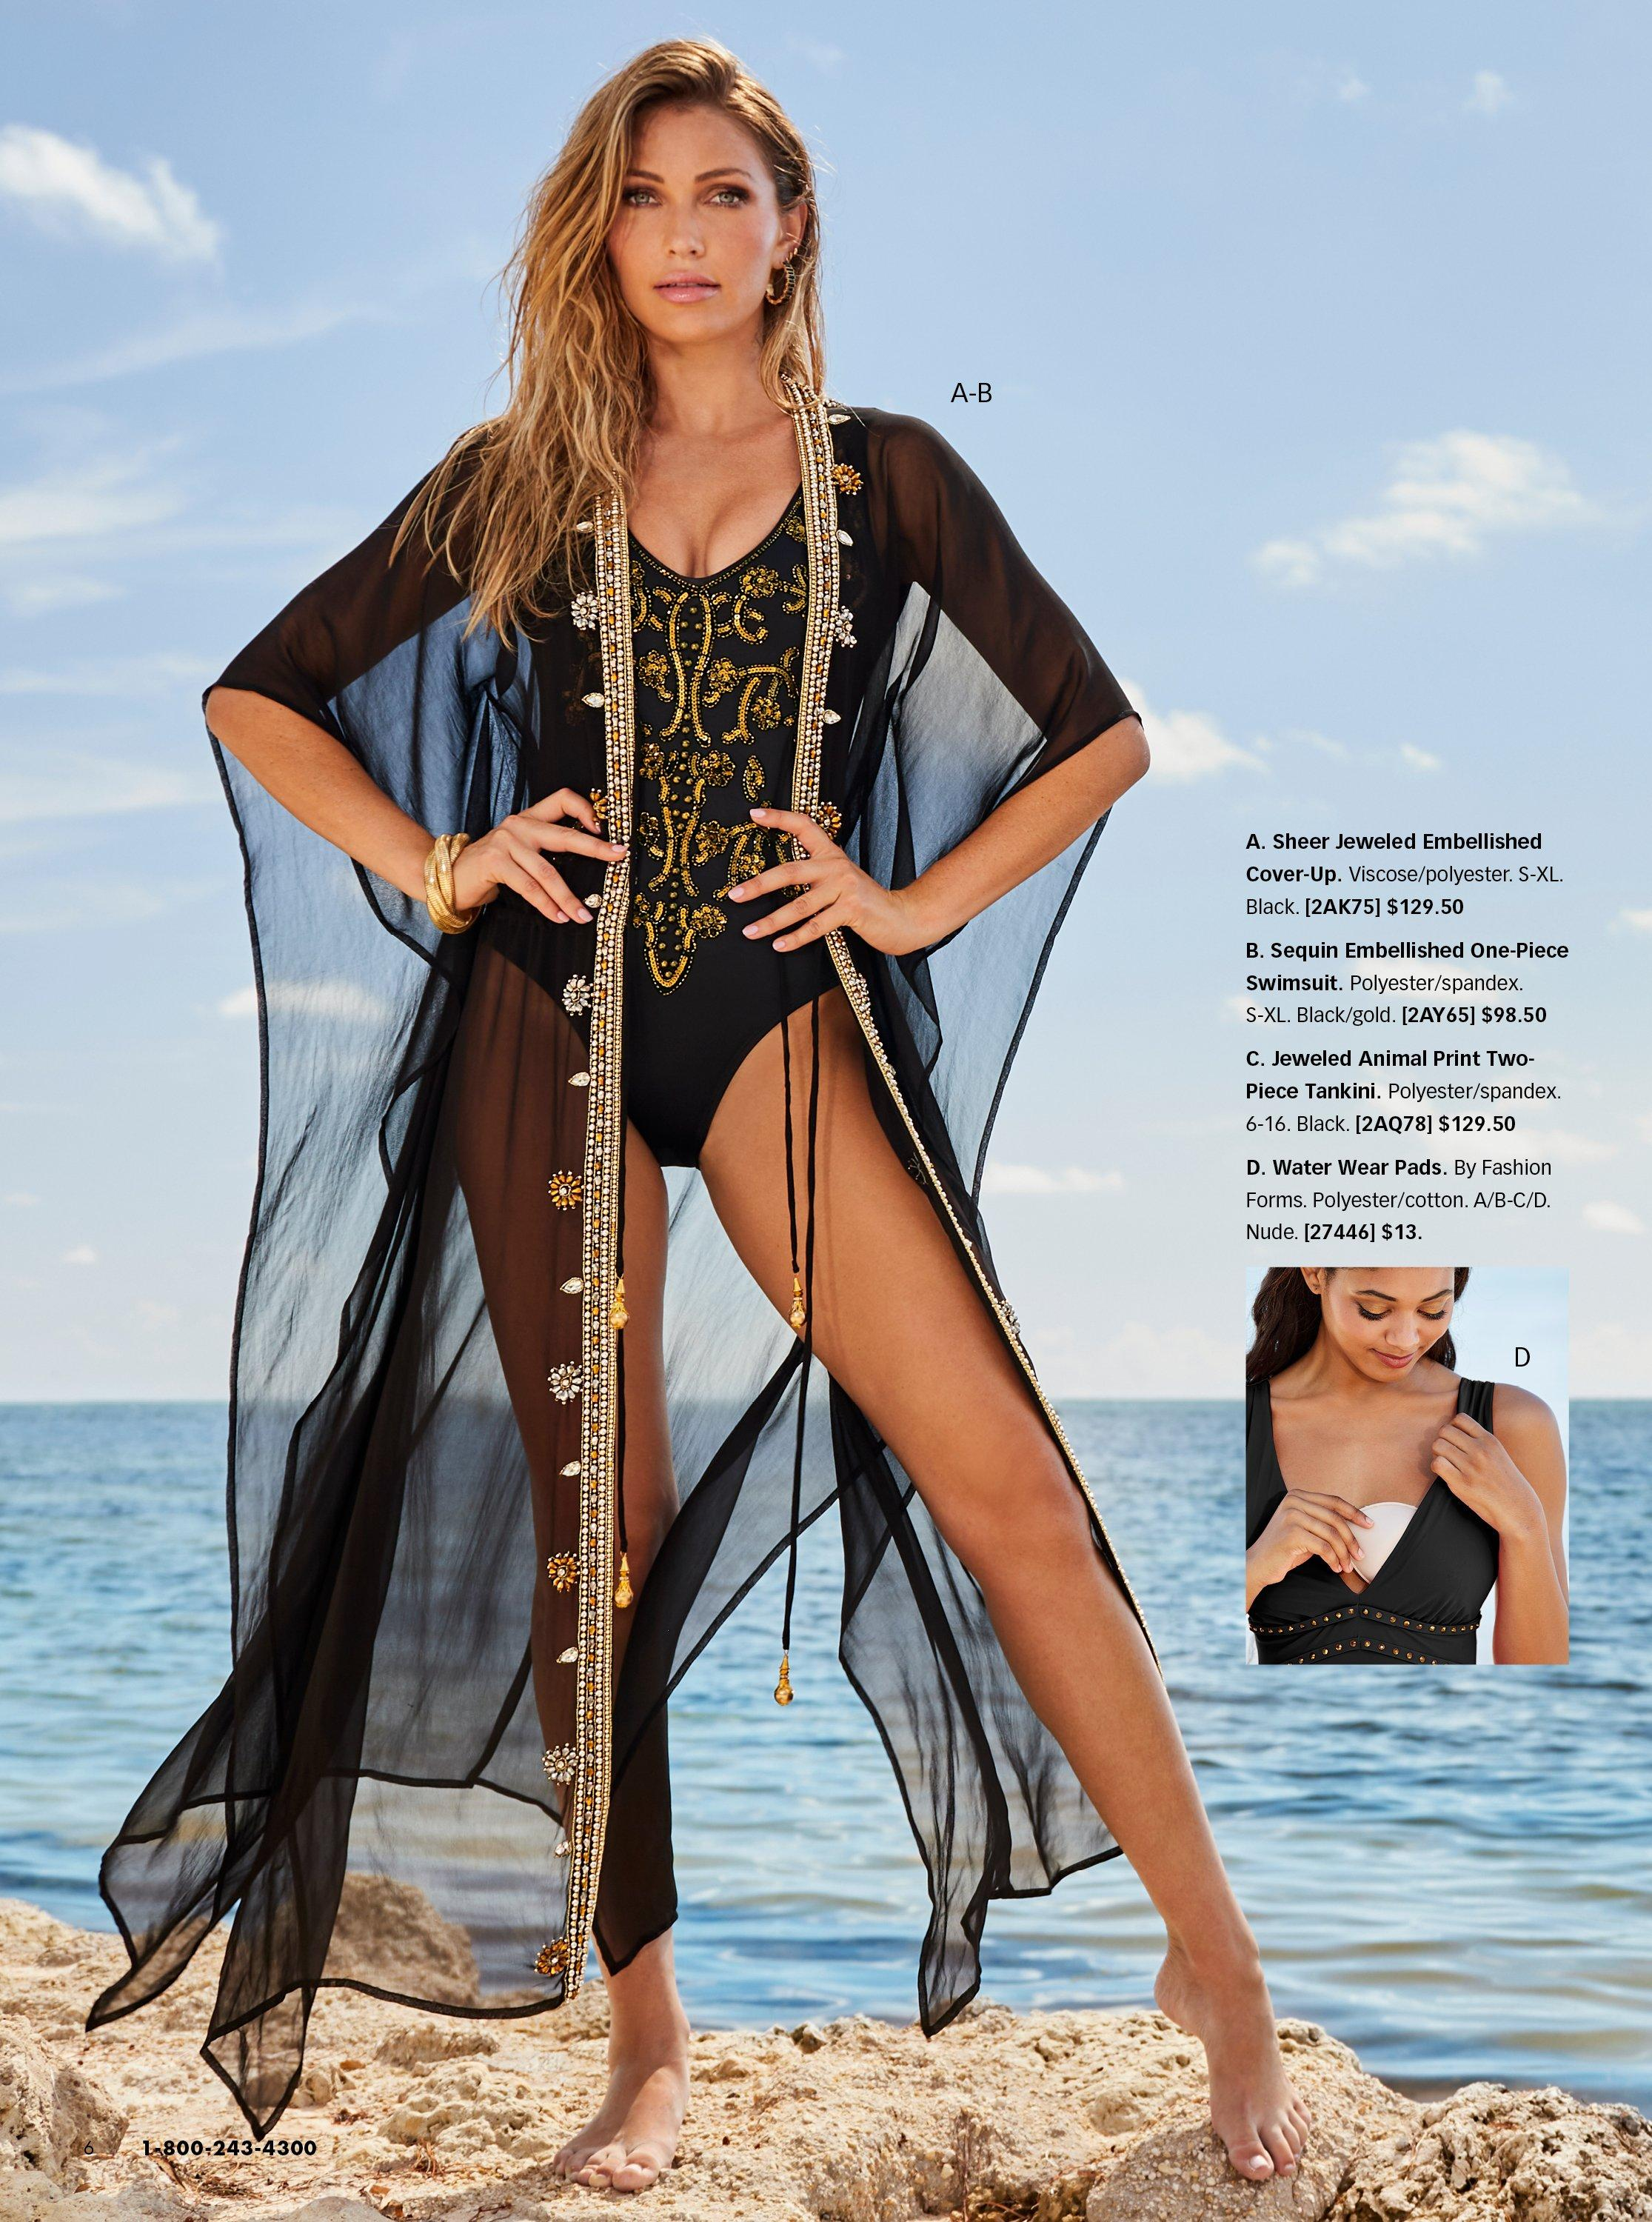 model wearing a black sheer coverup with gold embellishments and a black one-piece swimsuit with gold embellishments. pull-out image of water wear pads.